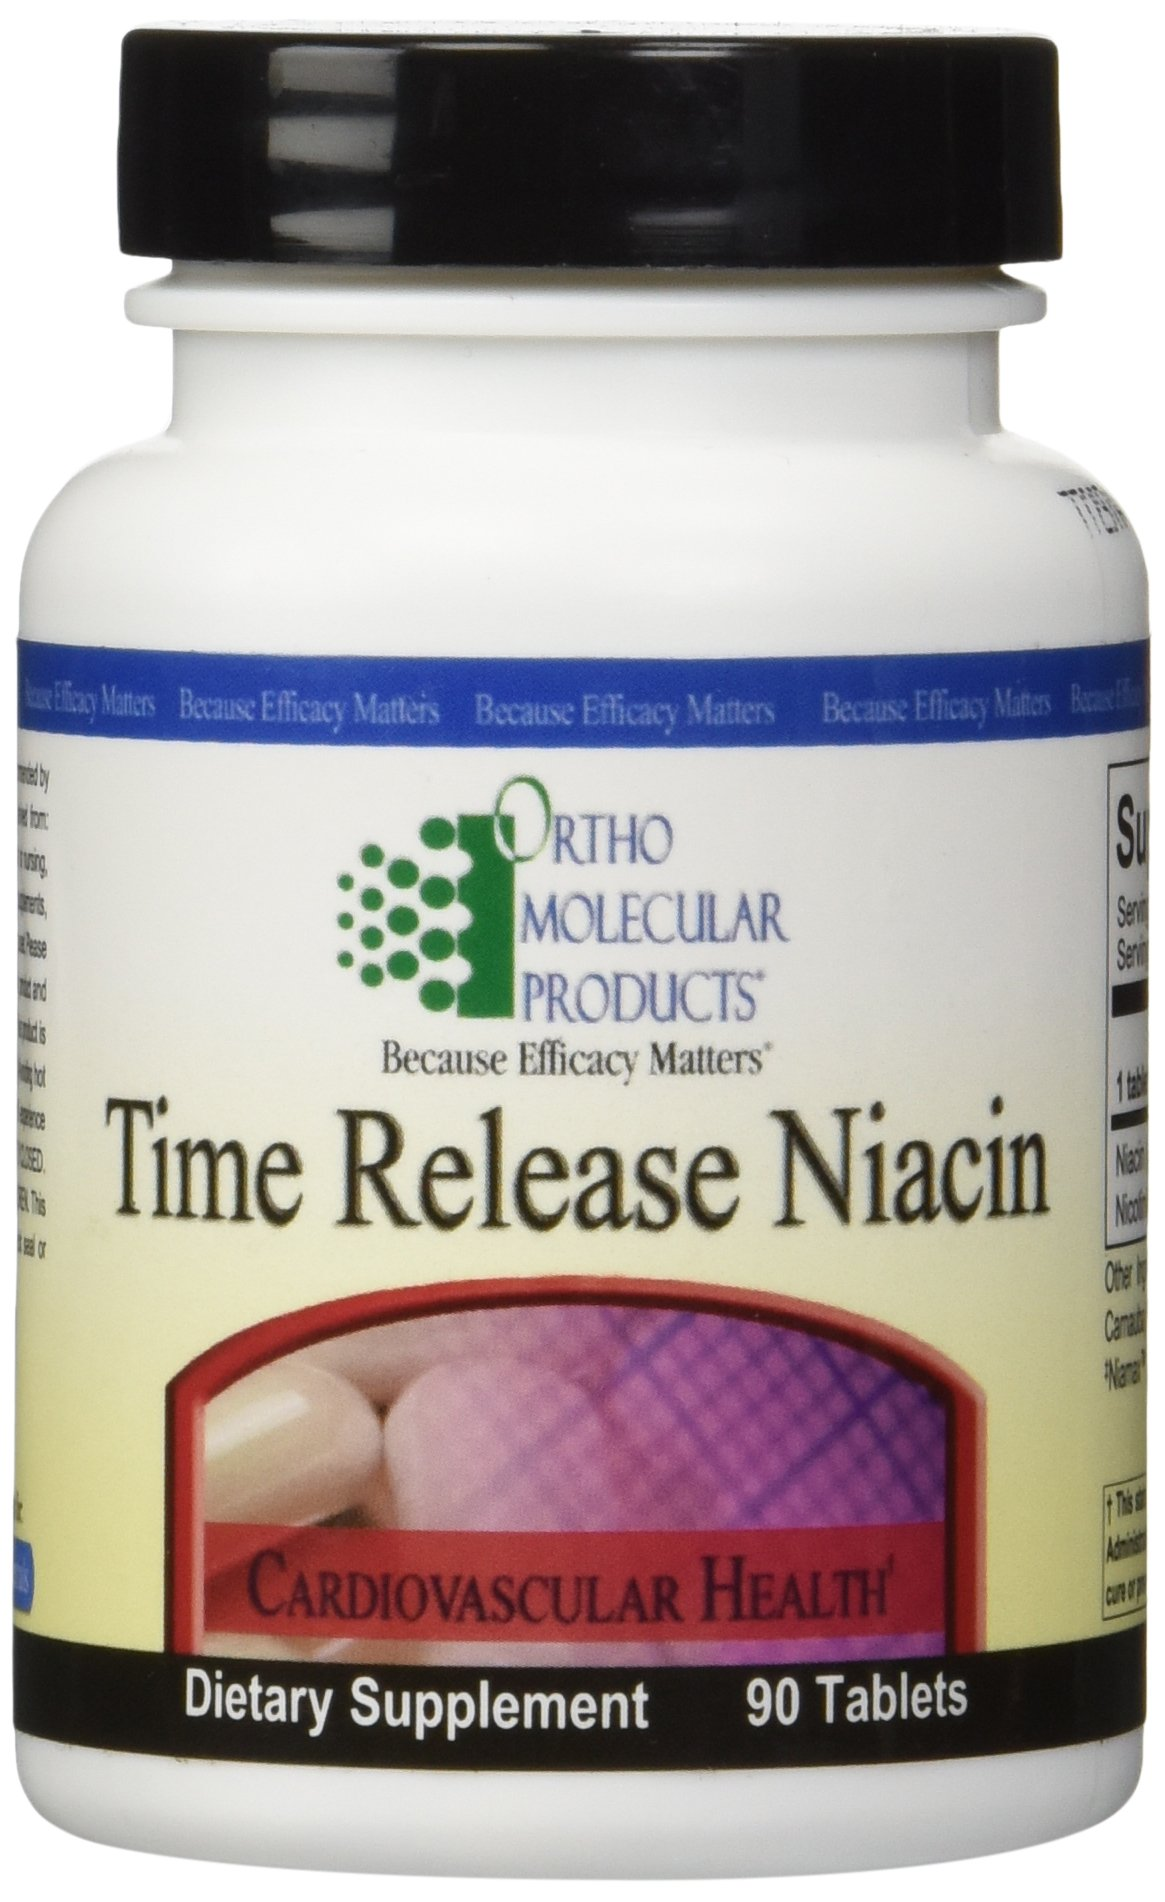 Ortho Molecular - Time Release Niacin - 90 Tablets by Ortho Molecular Products